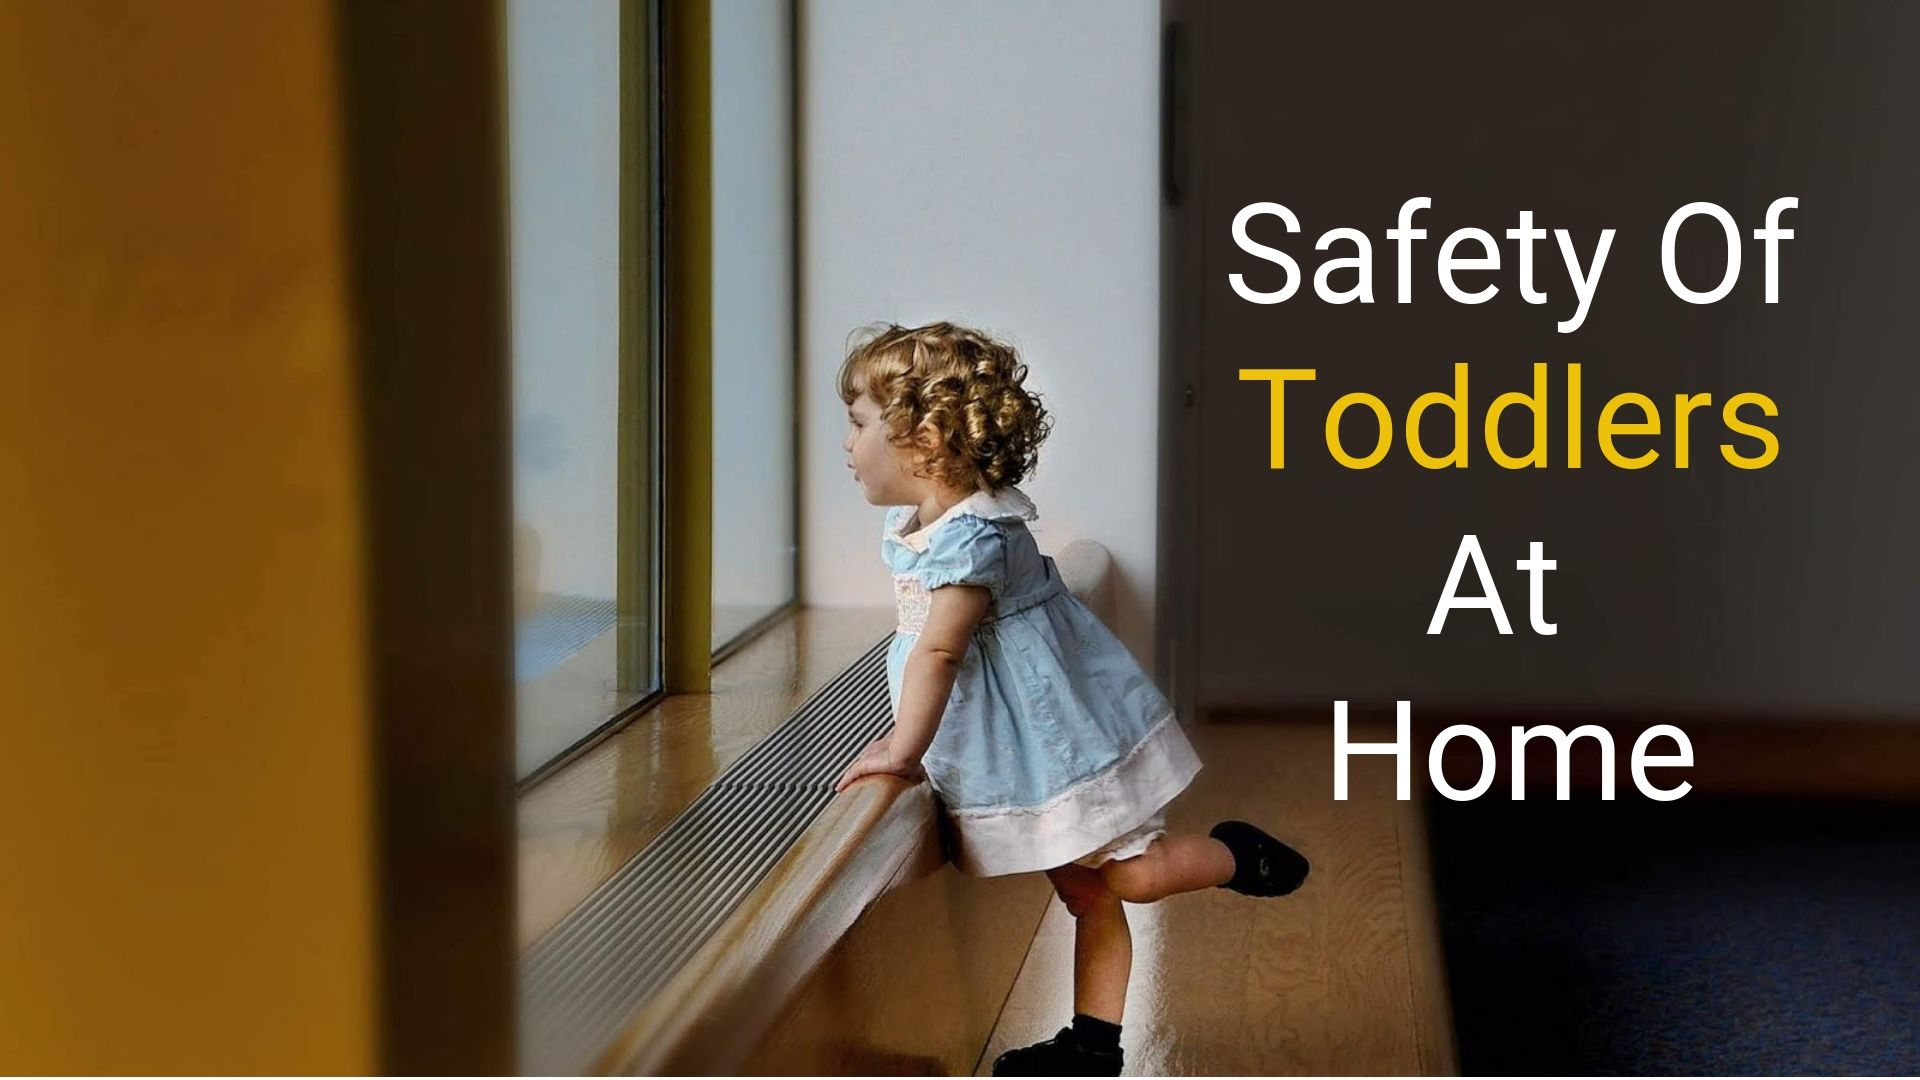 7 Dangerous Situations for Toddlers At Home